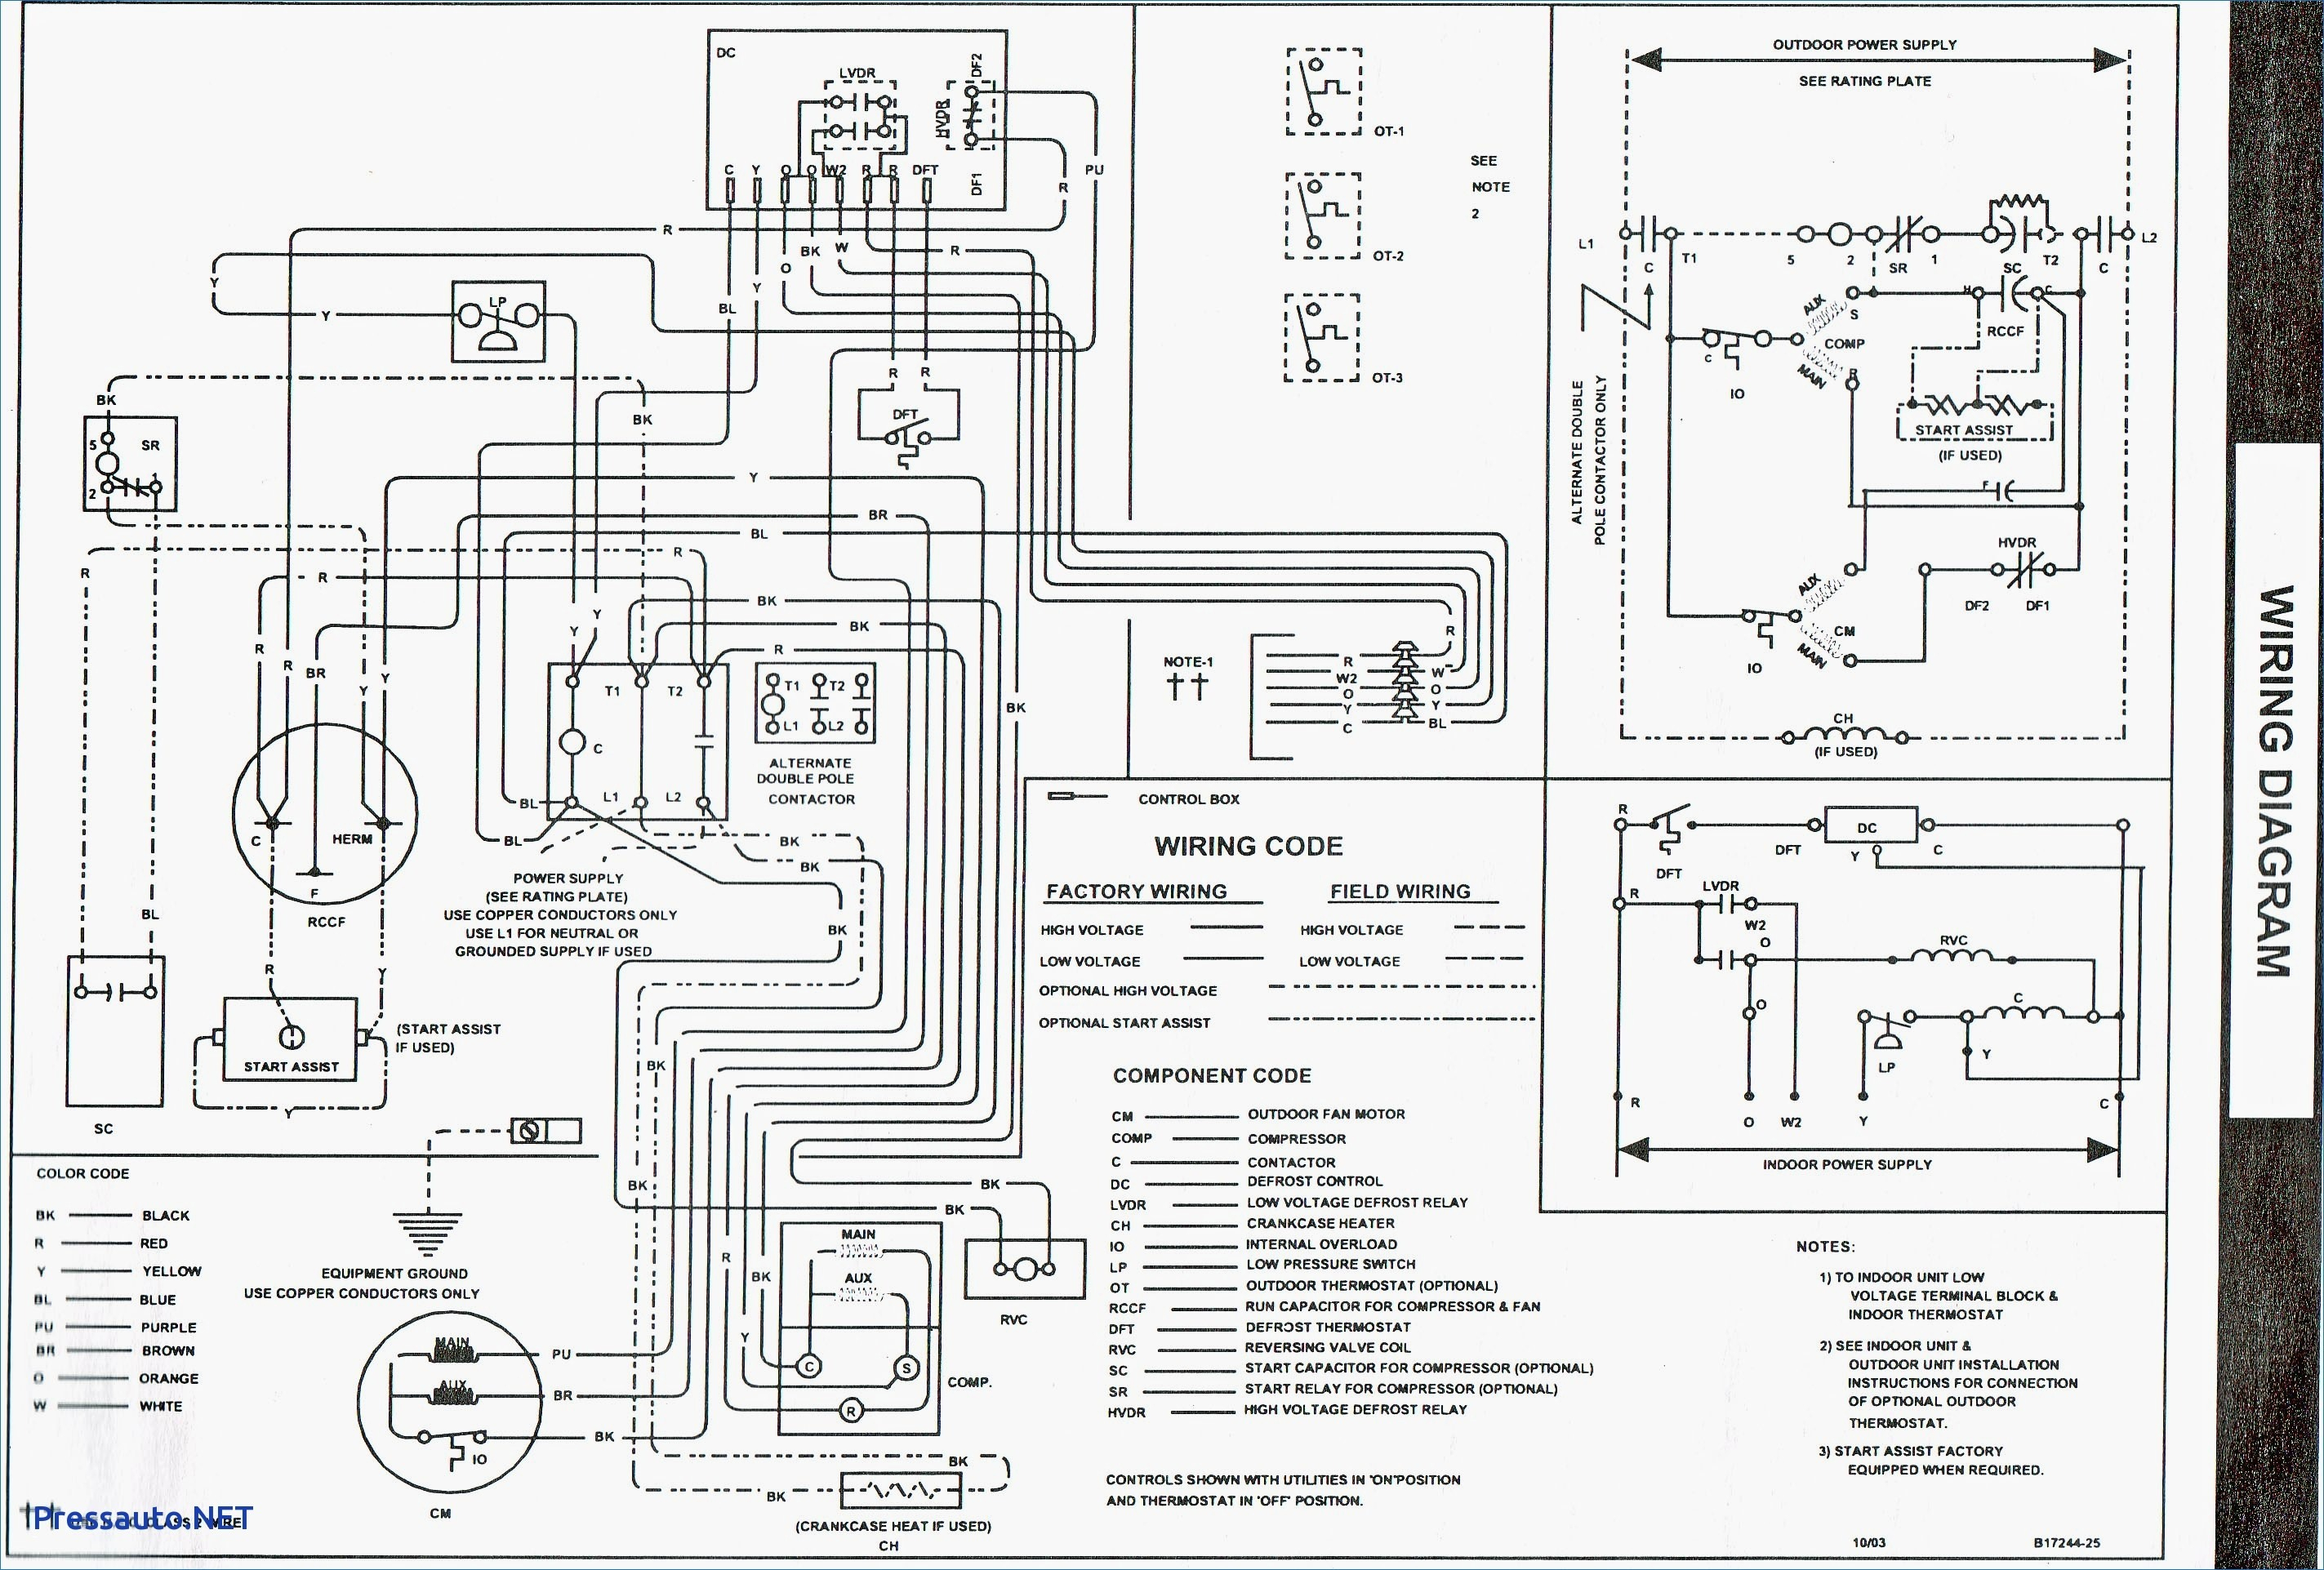 goodman control board wiring diagram